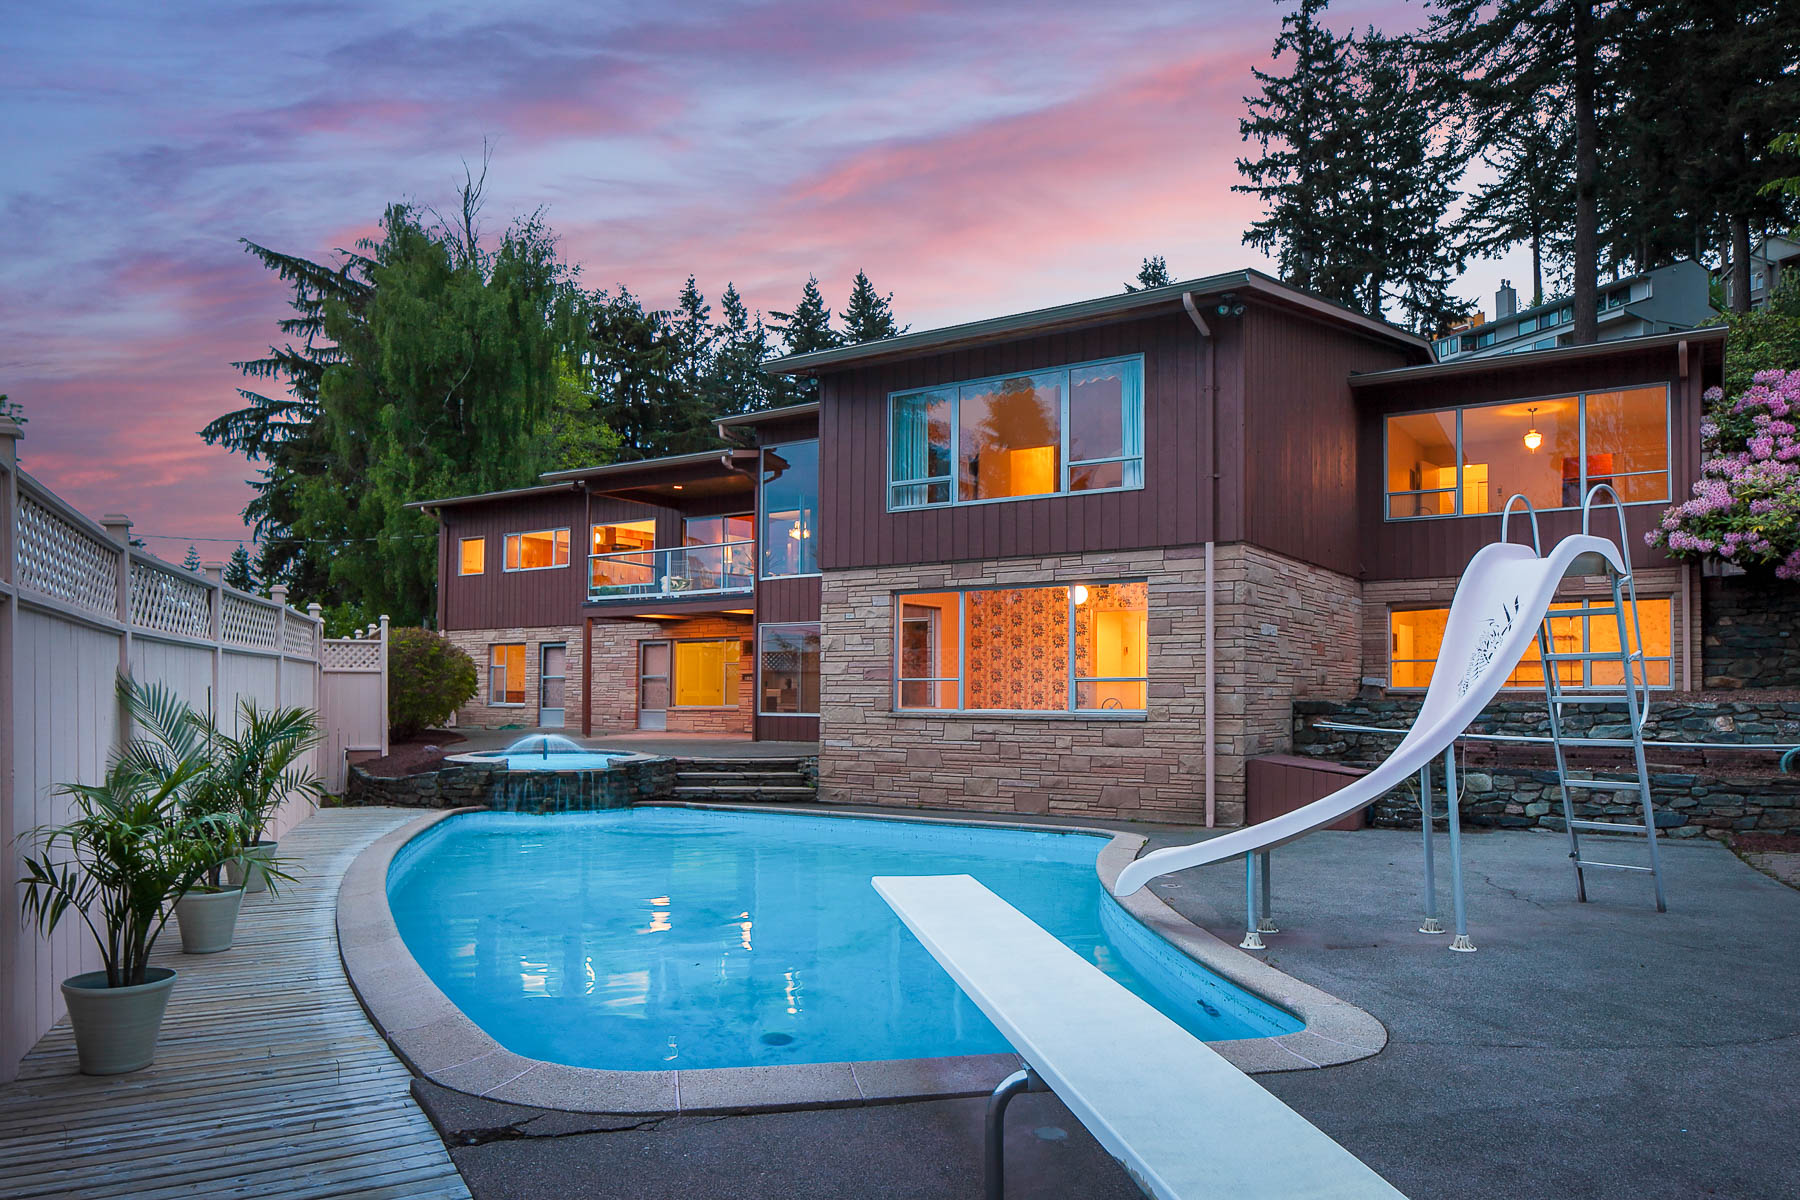 Mid century home with pool in Bellingham